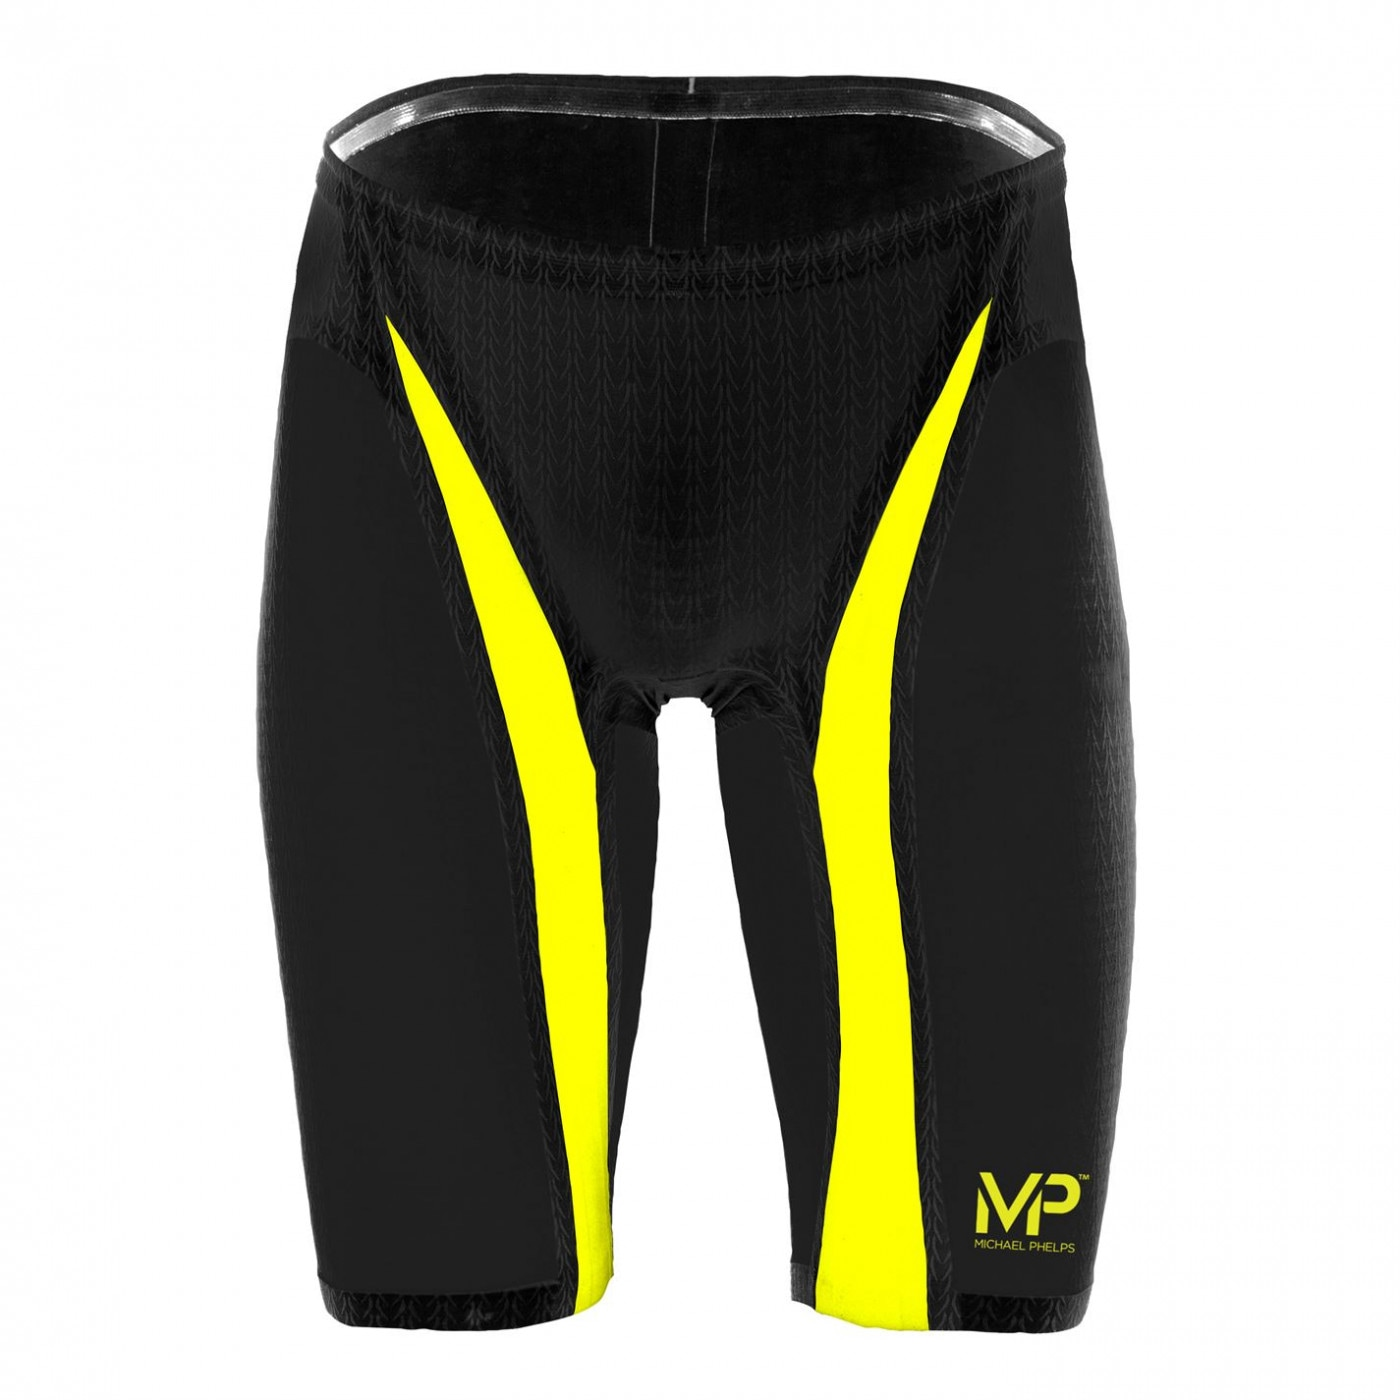 Michael Phelps Xpresso Jammers Mens